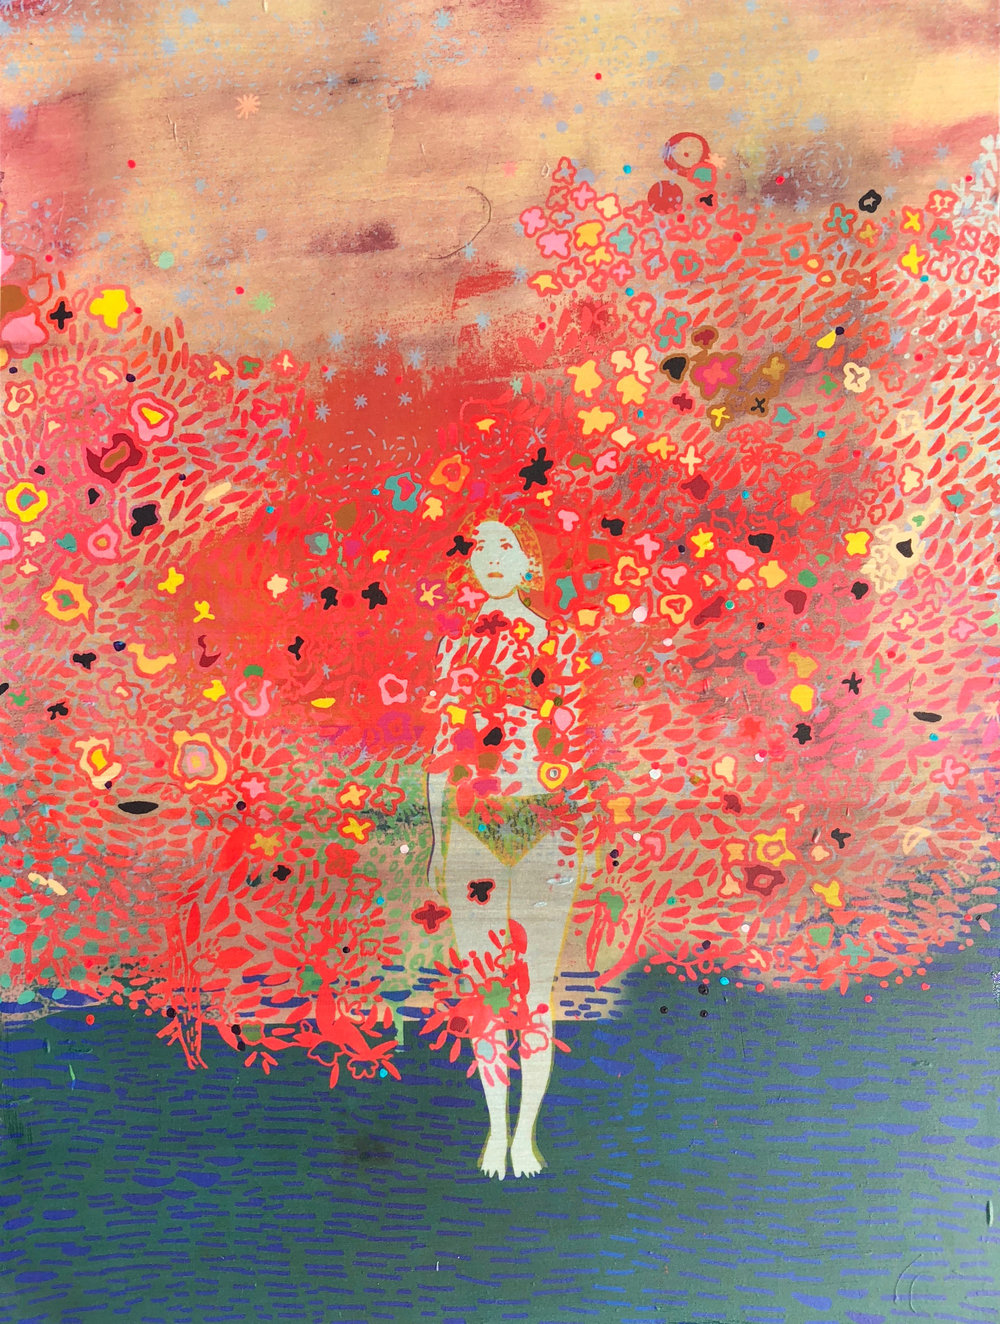 Emma Repp__With Friends__18 x 24_Chiffon, Birch, Acrylic_$470.jpg